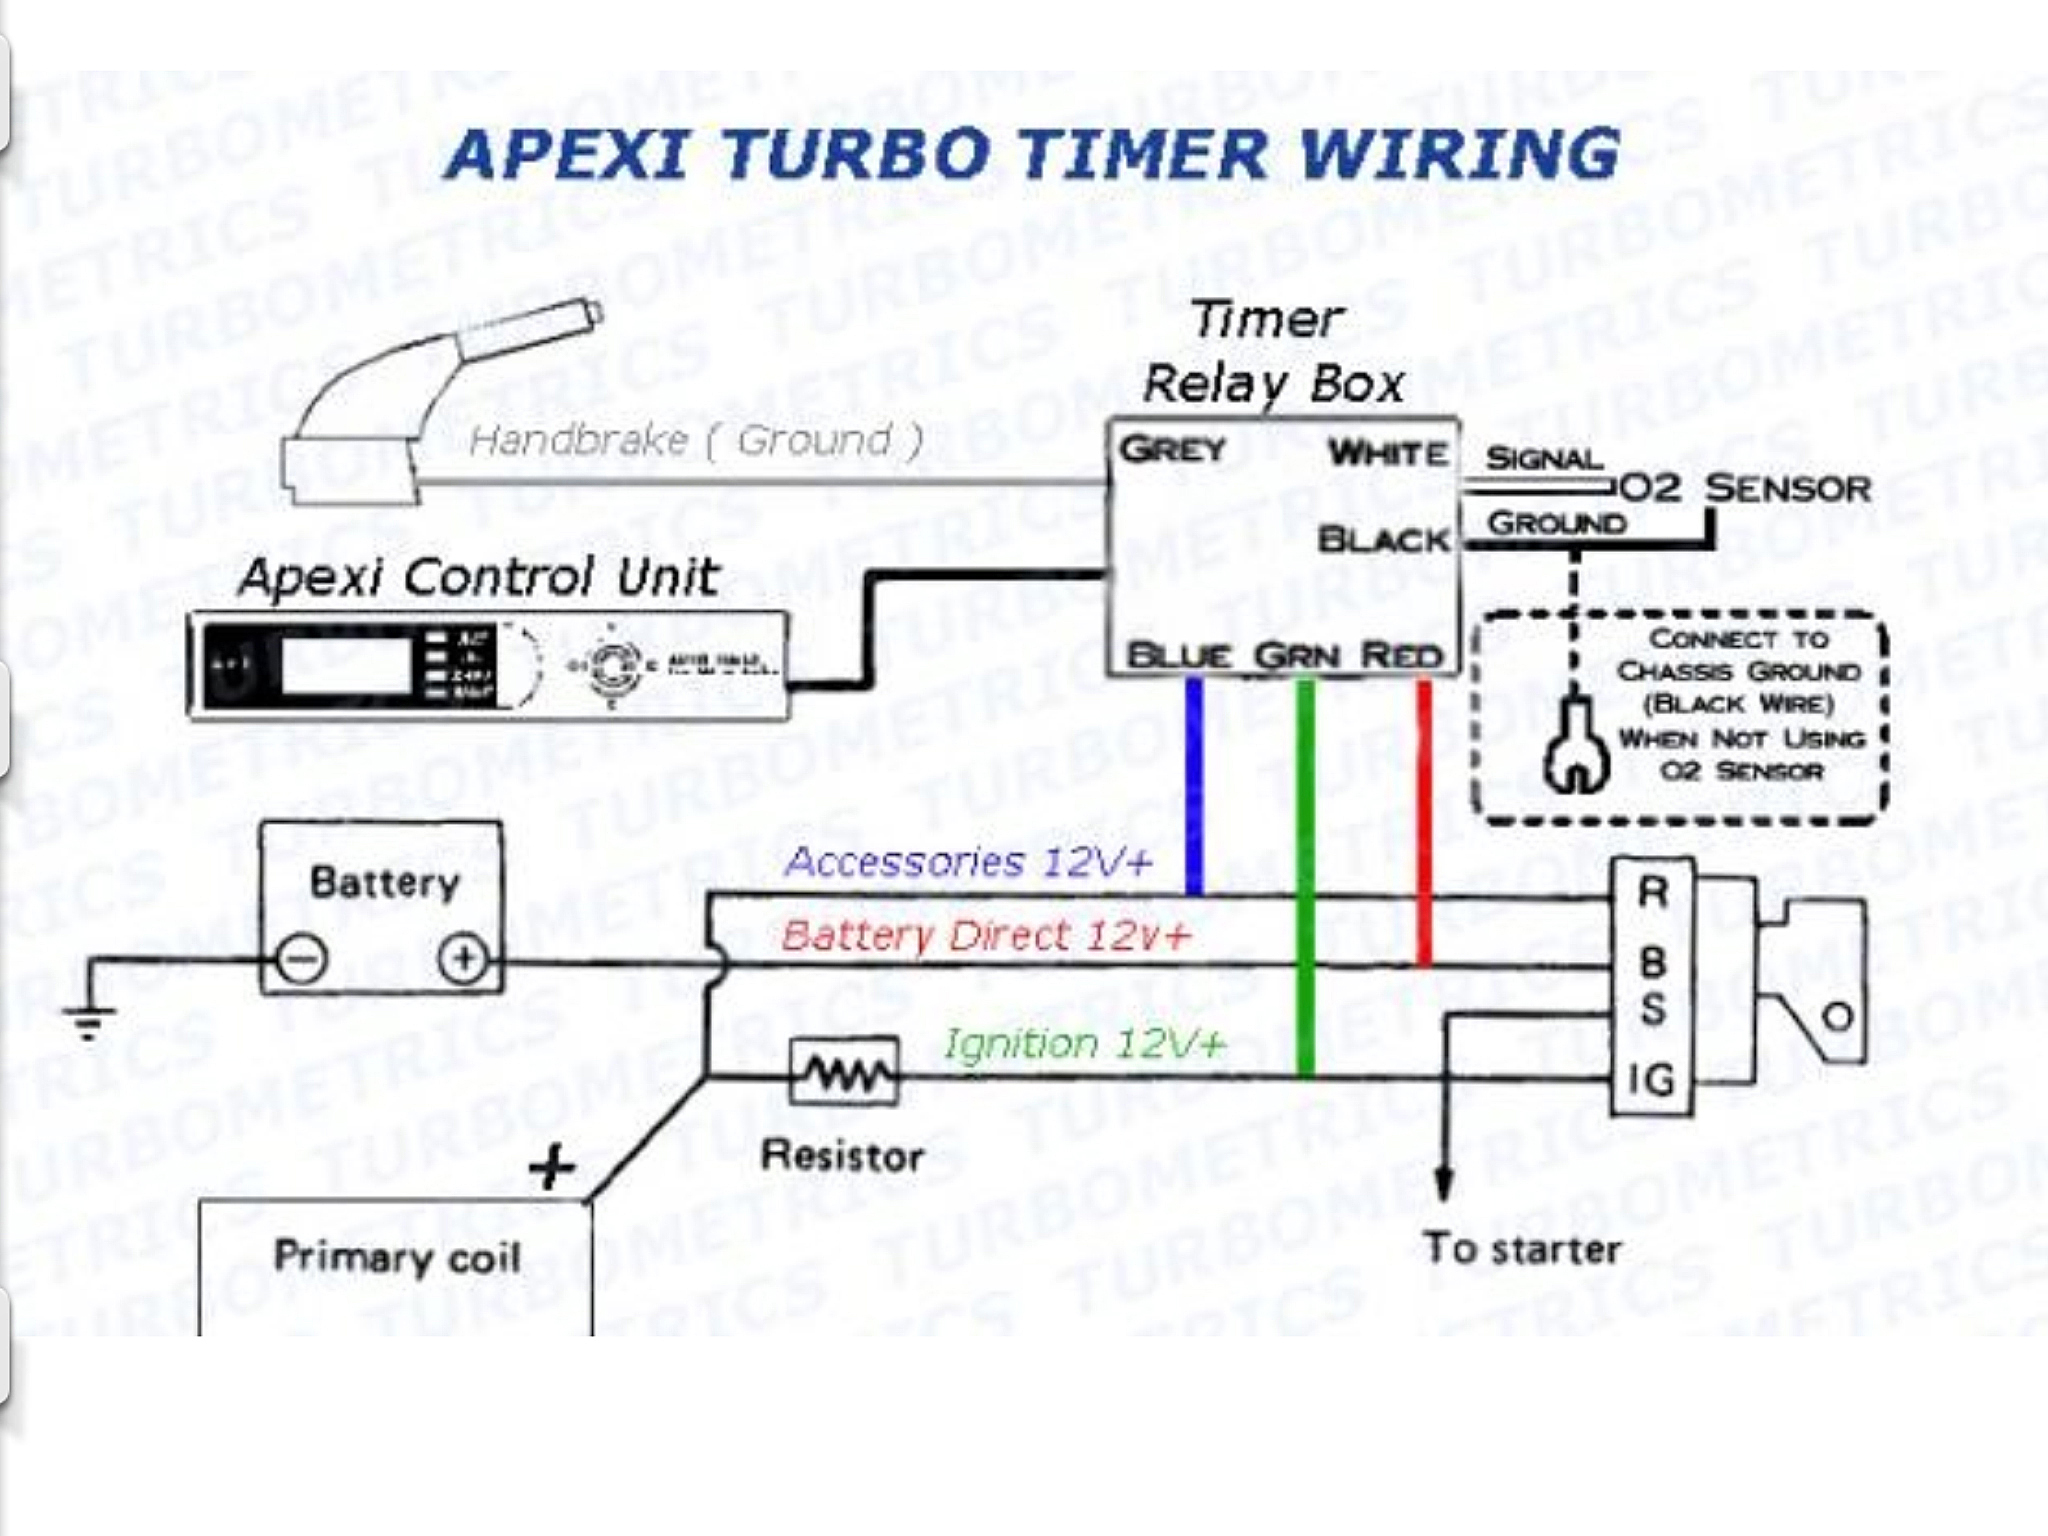 C103 068 5?resize\\\=665%2C499\\\&ssl\\\=1 apexi rsm wiring diagram wiring diagrams apexi rsm wiring diagram honda at gsmportal.co